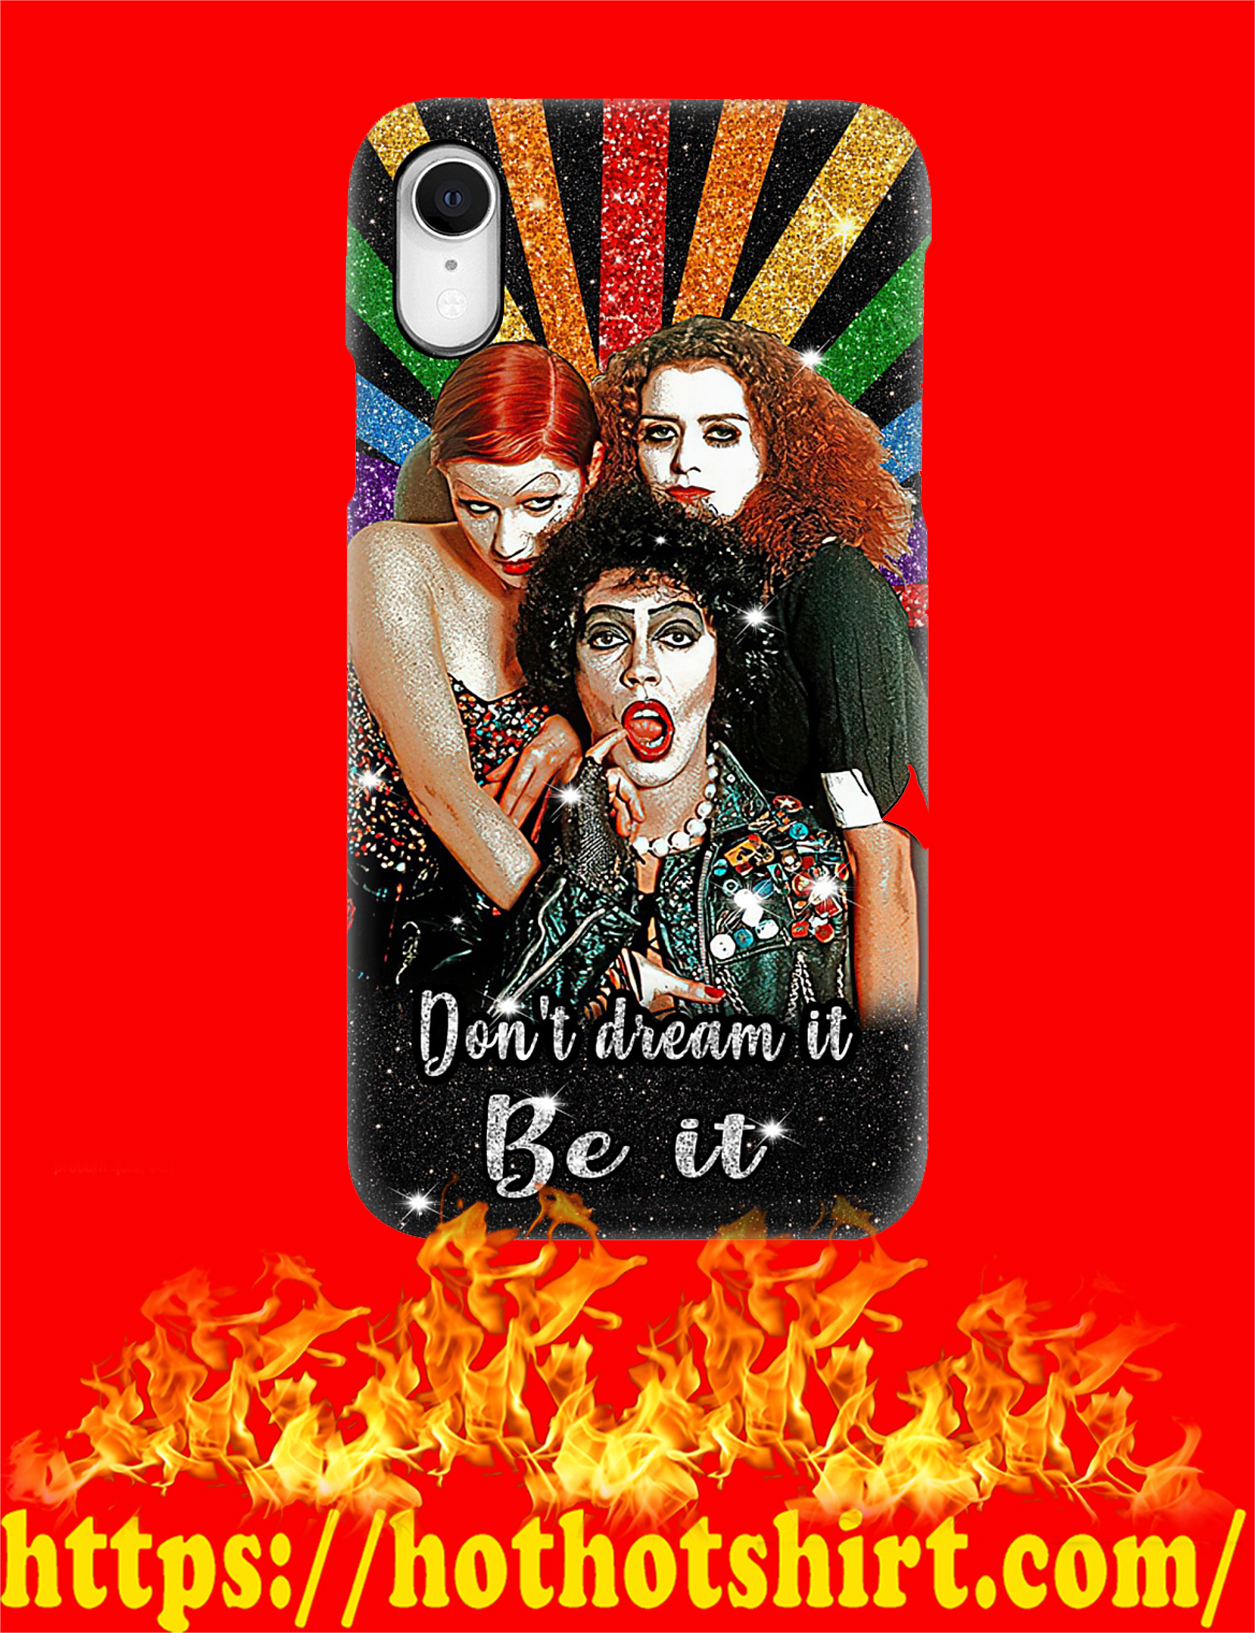 Rocky horror picture show don't dream it be it phone case - pic 1